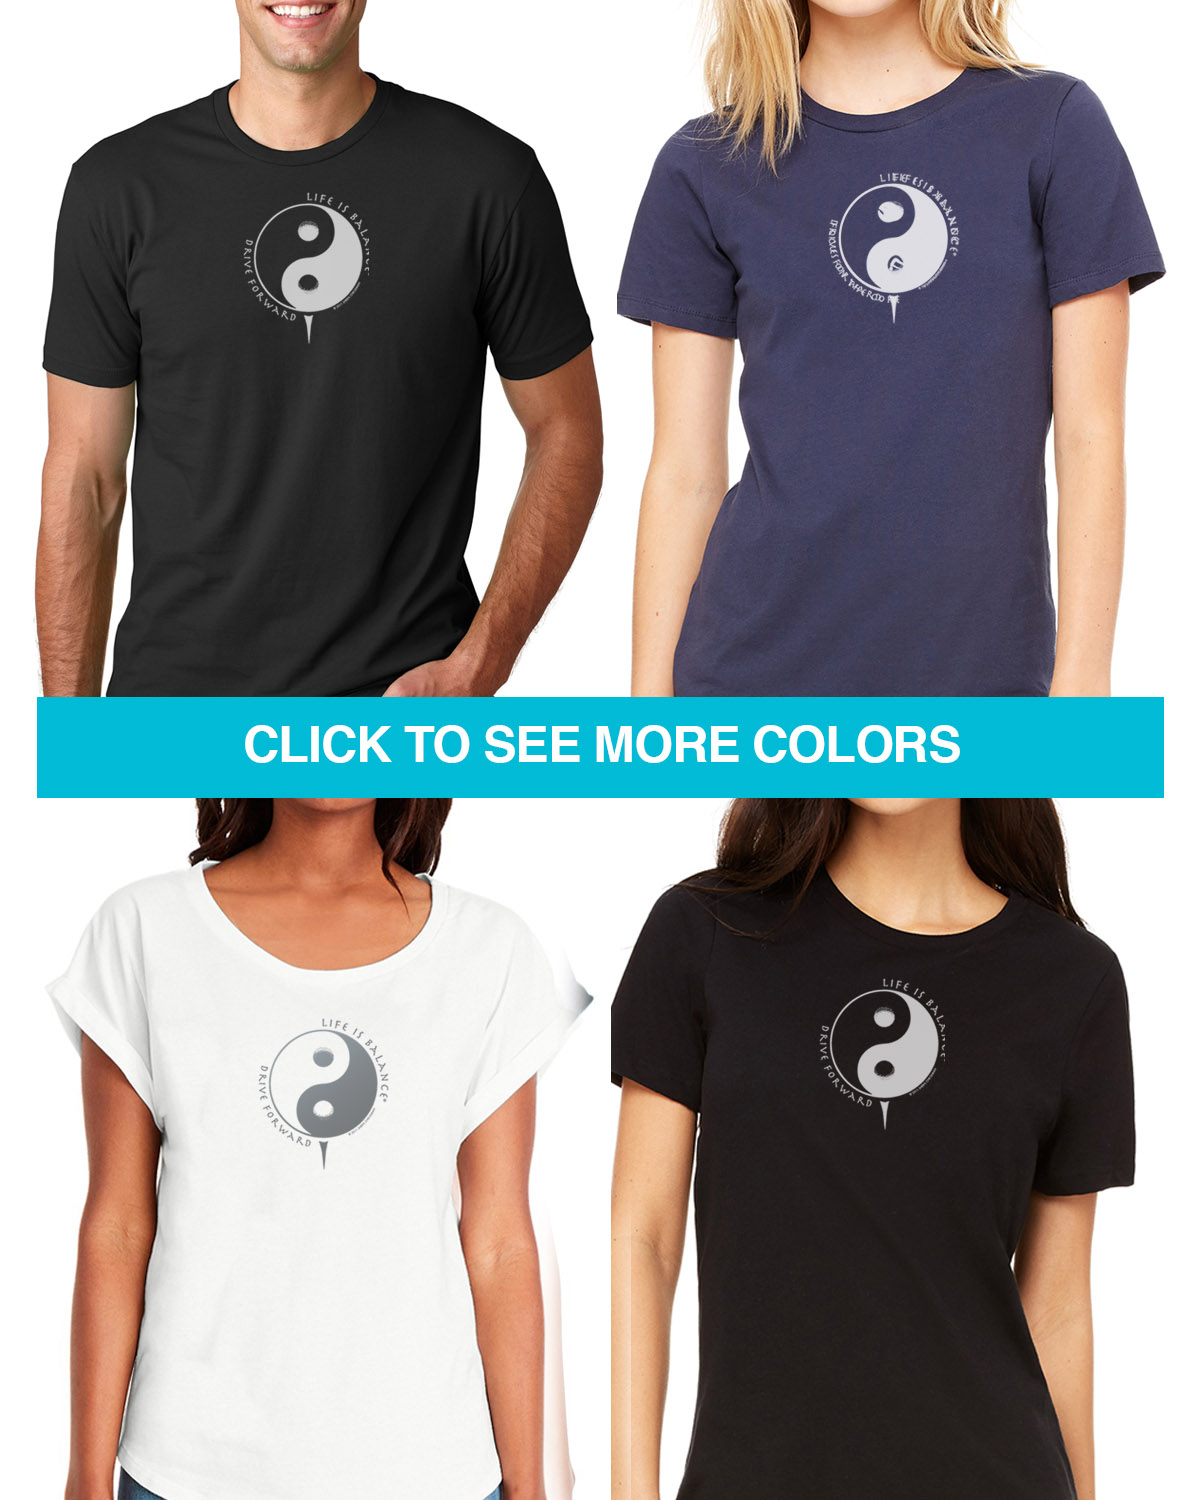 Short sleeve golf t-shirts for Men and Women.